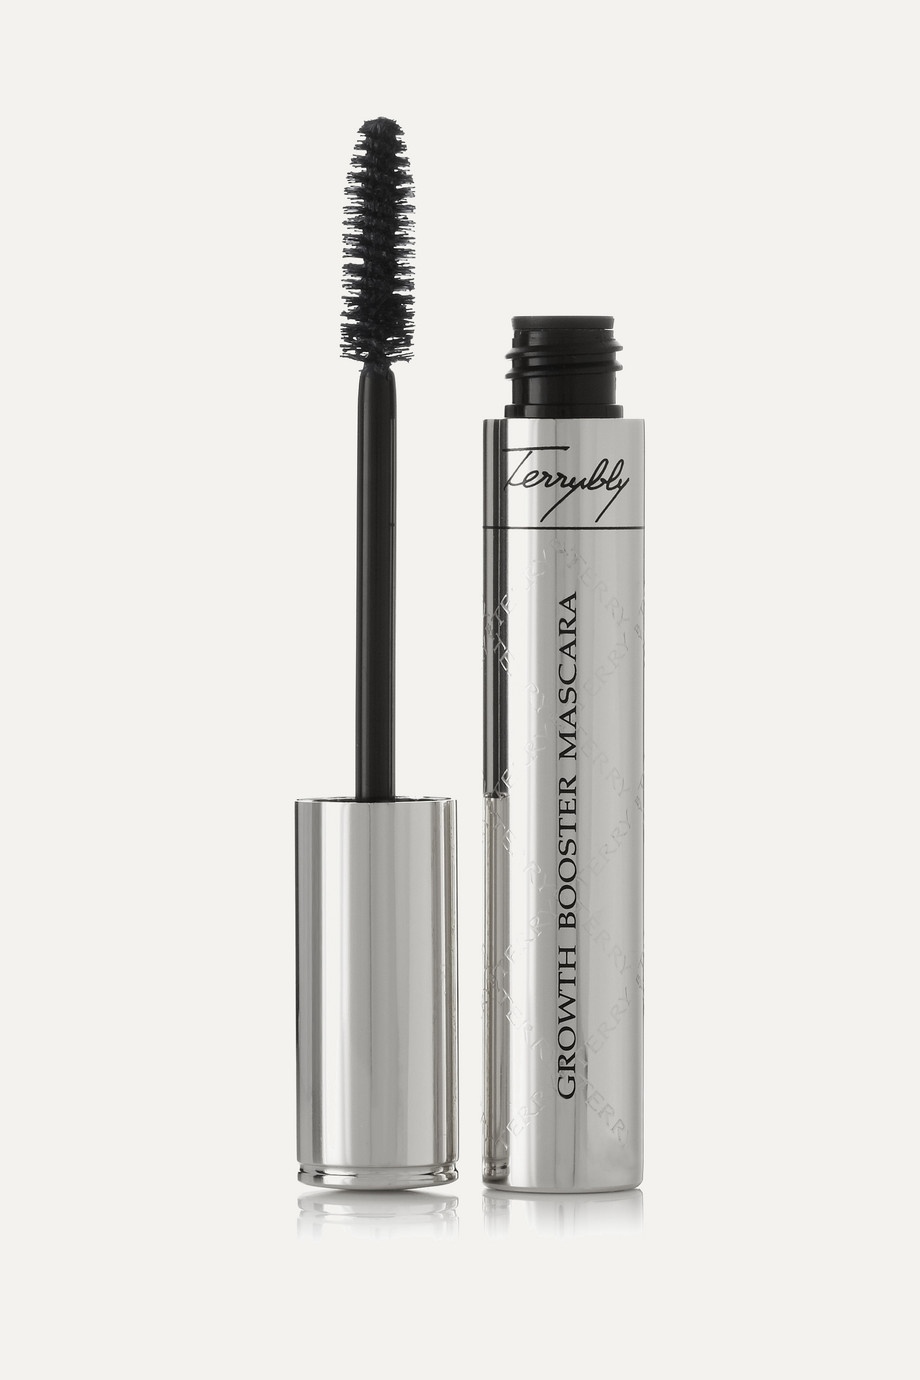 Mascara Terrybly - Terrybleu, by By Terry